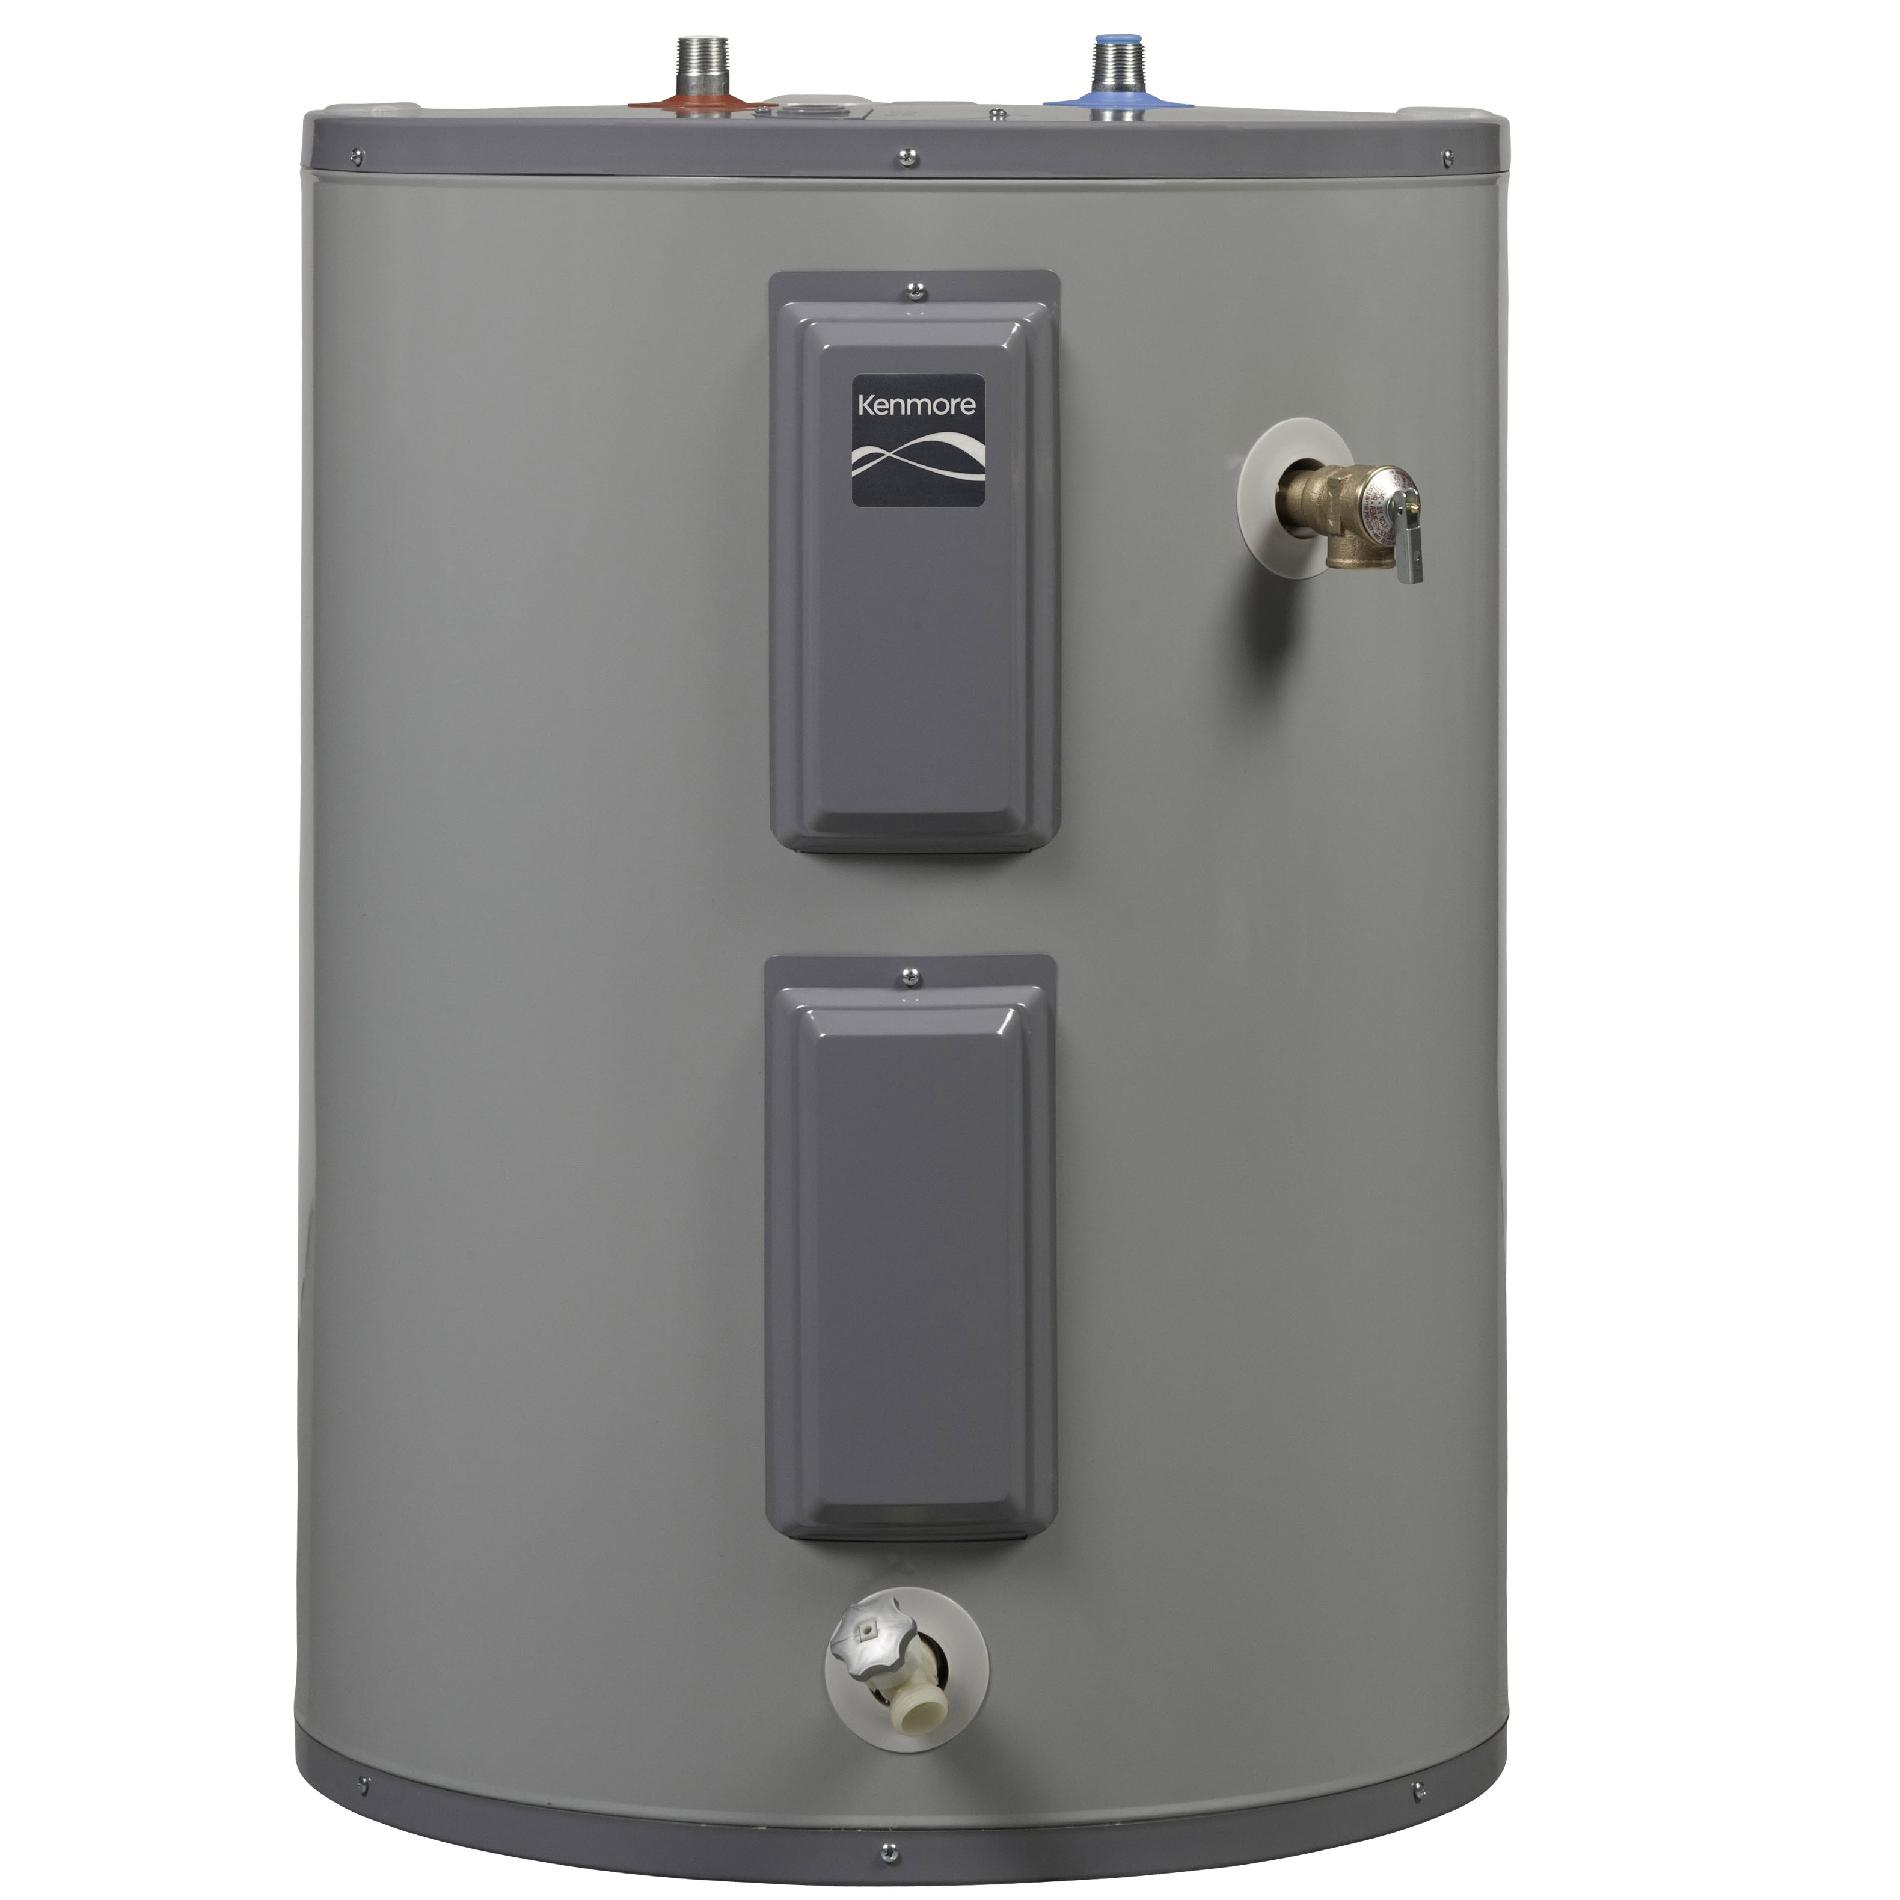 38-gal-Short-9-Year-Electric-Water-Heater-Limited-Availability